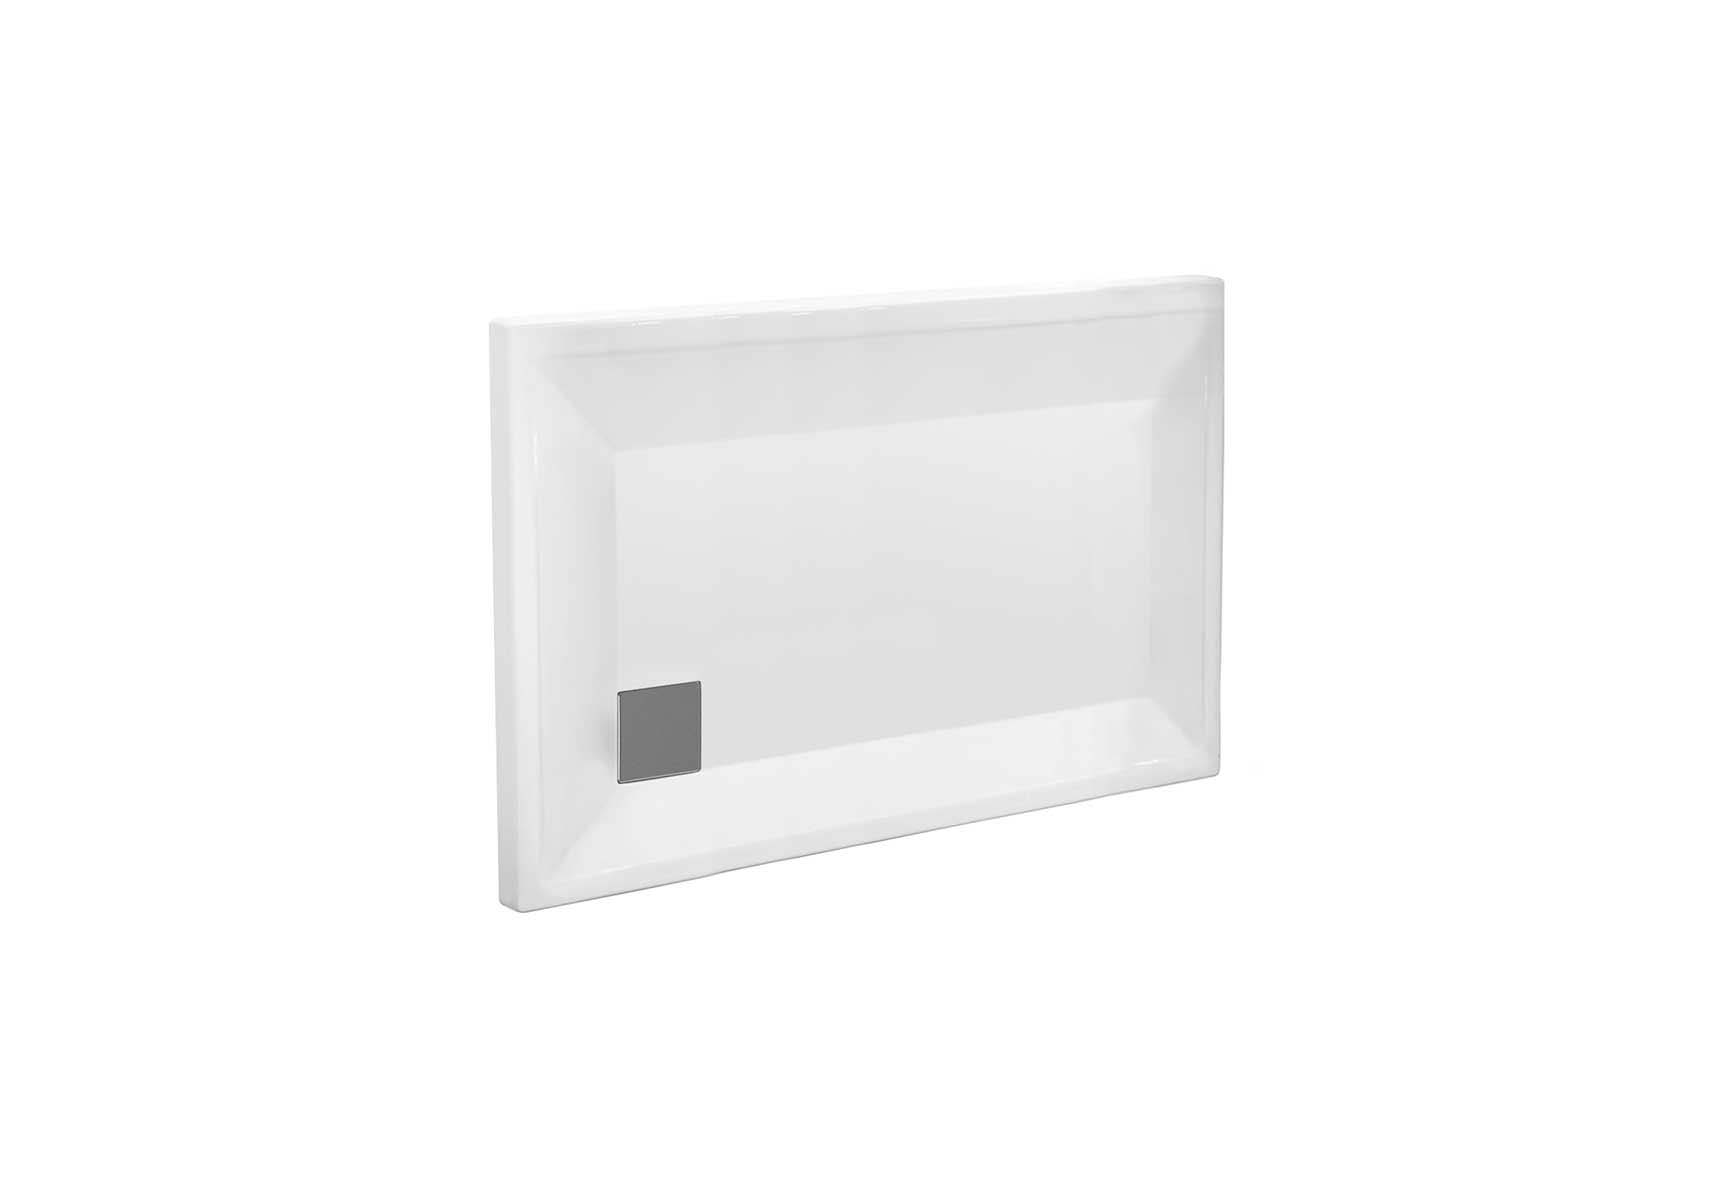 T90 130x90 Rectangular Monoflat Shower Tray